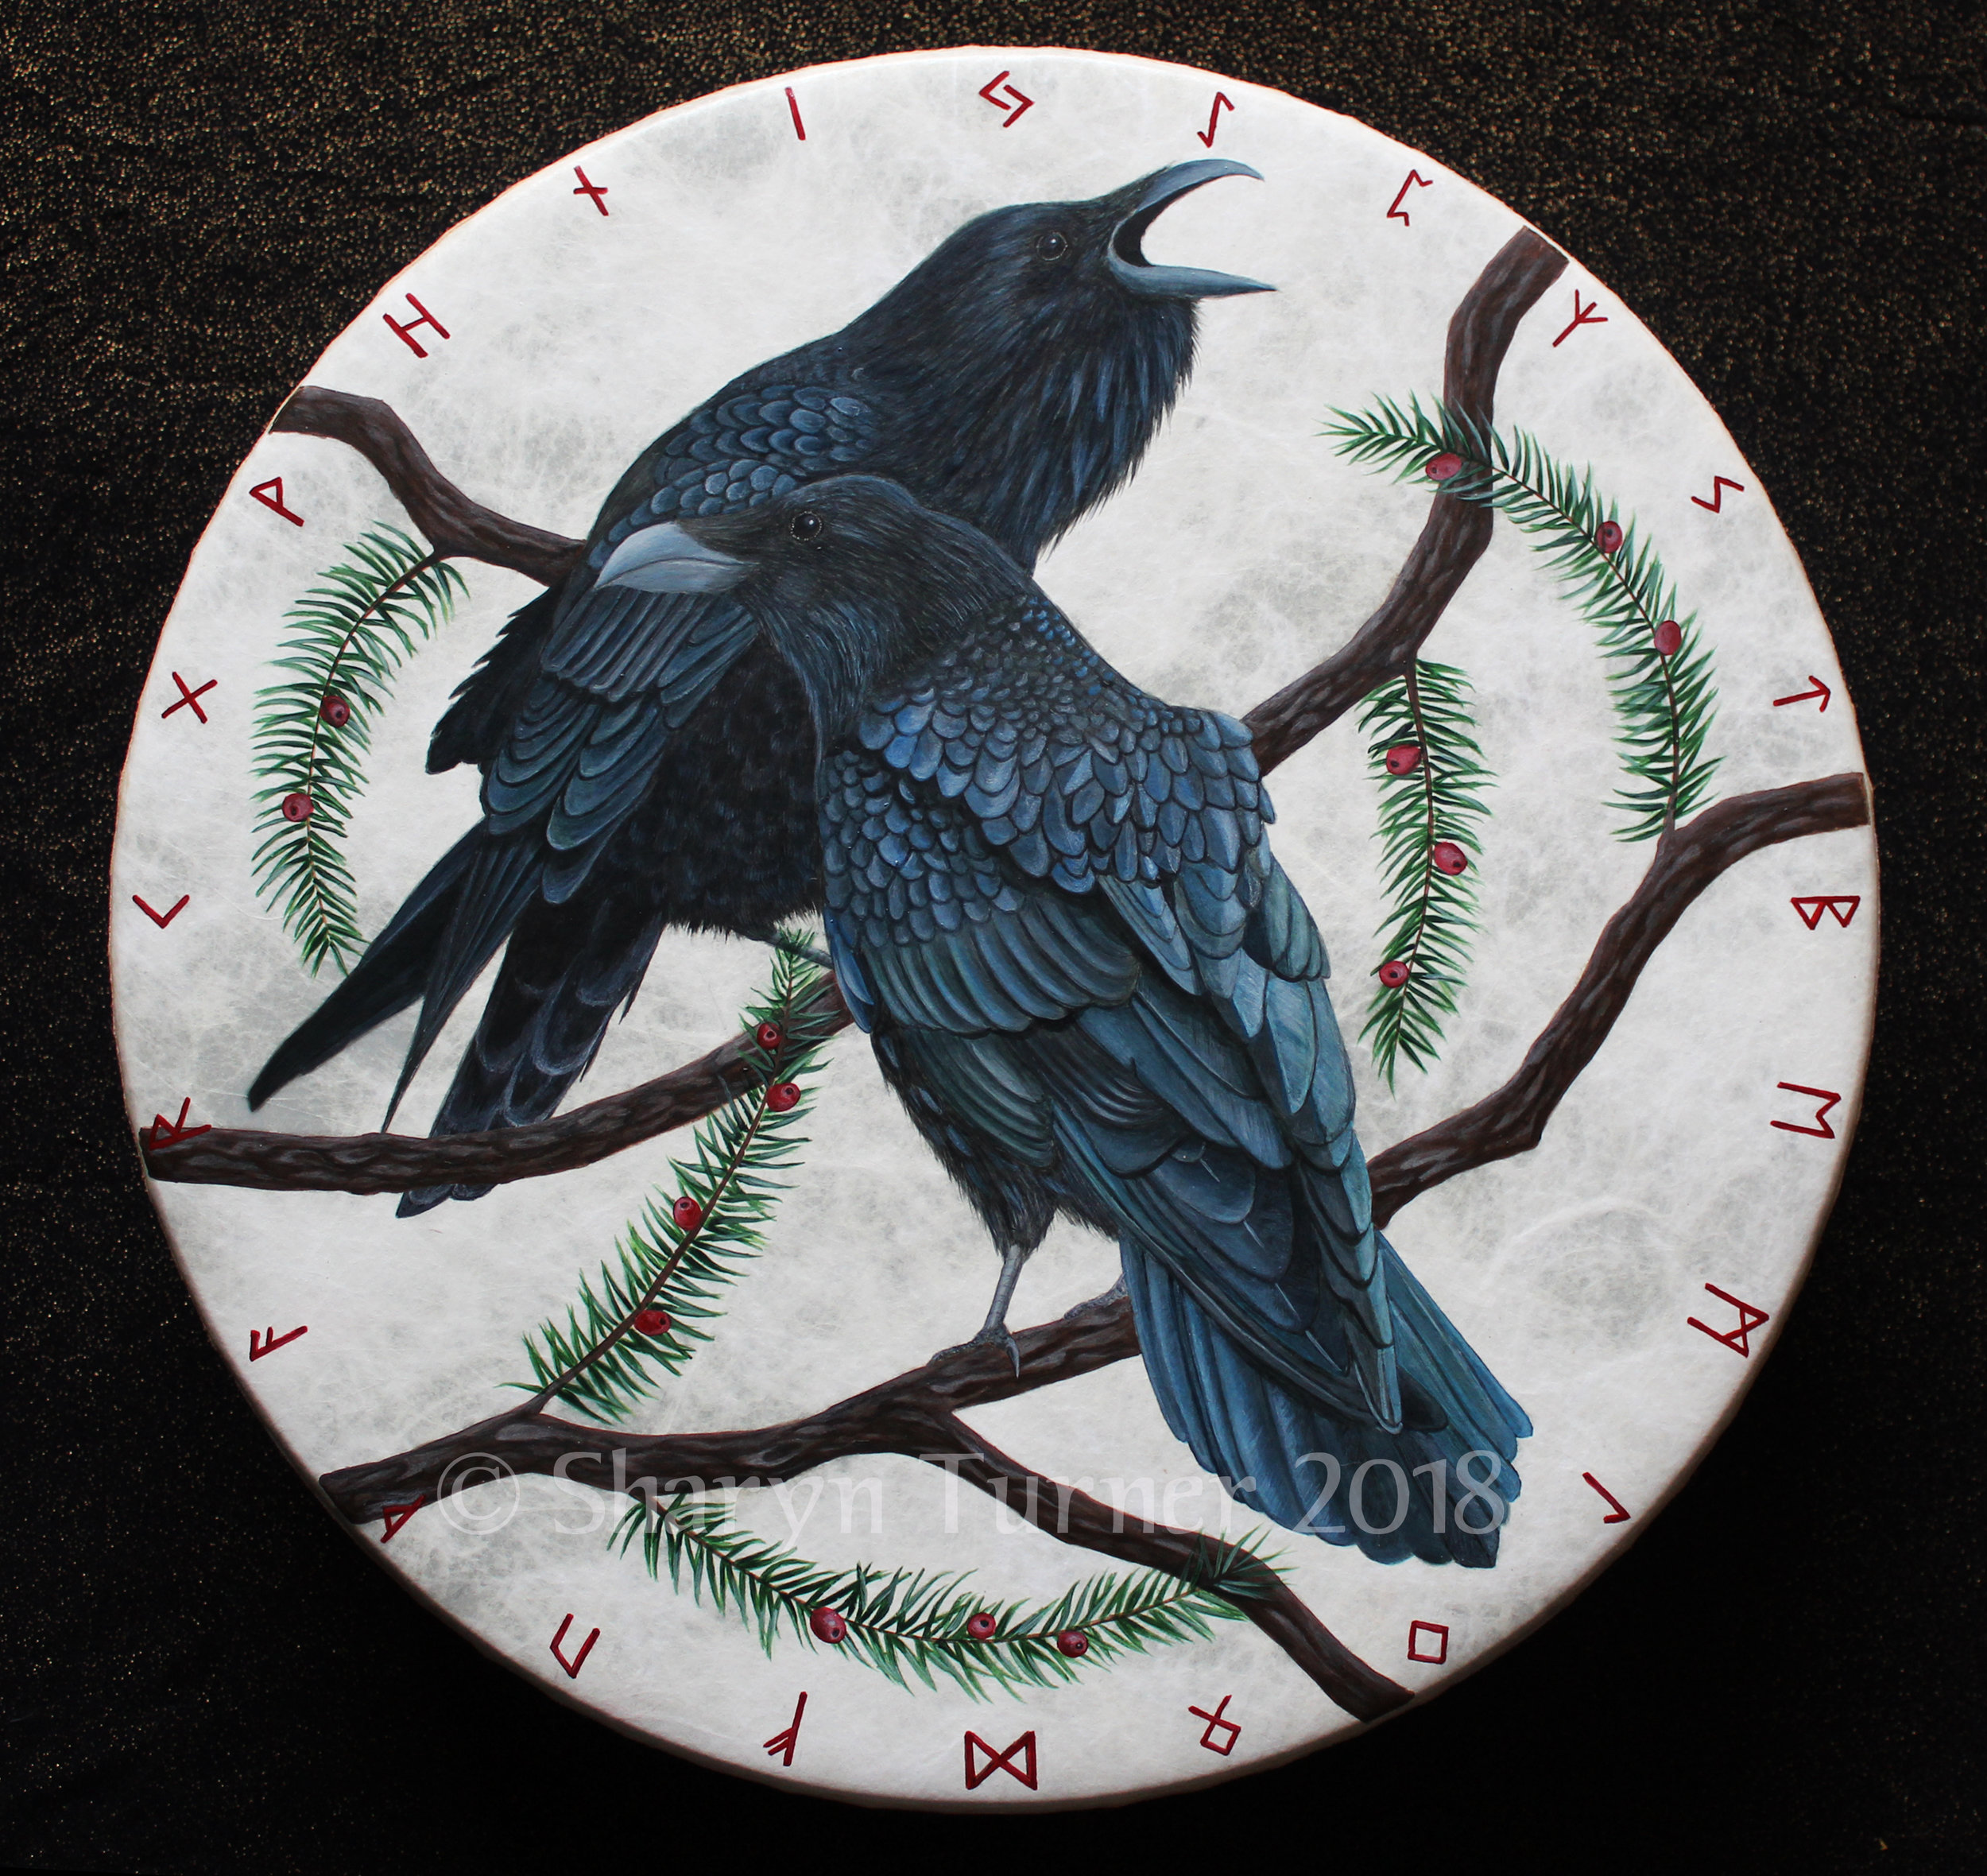 Odin's Ravens Rune Drum - Acrylic on Fiberskyn © Sharyn Turner 2018